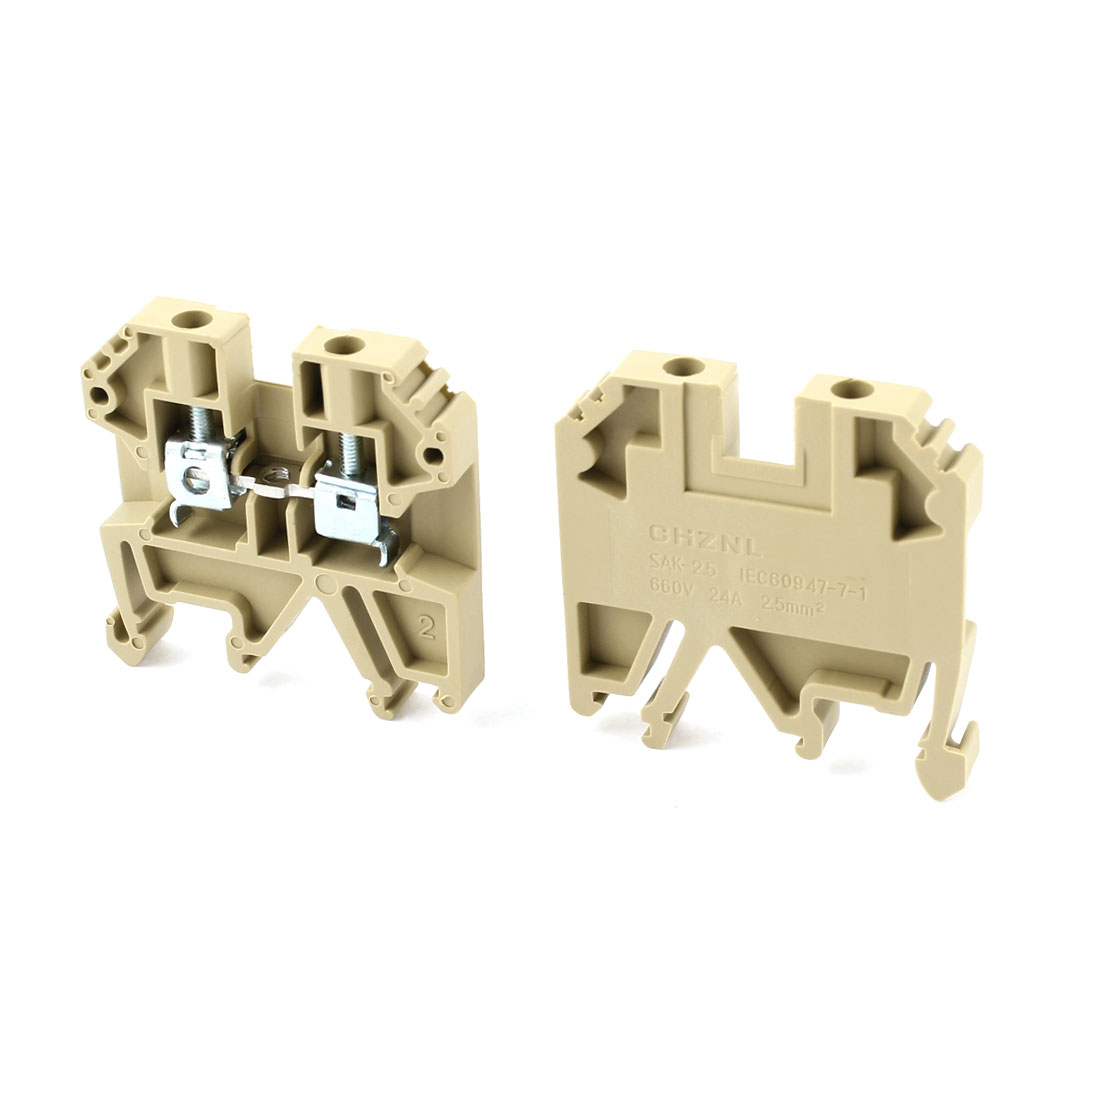 Khaki 660V 24A SAK-2.5 IEC60947-7-1 Screw on Terminal Block Connector 2 Pcs